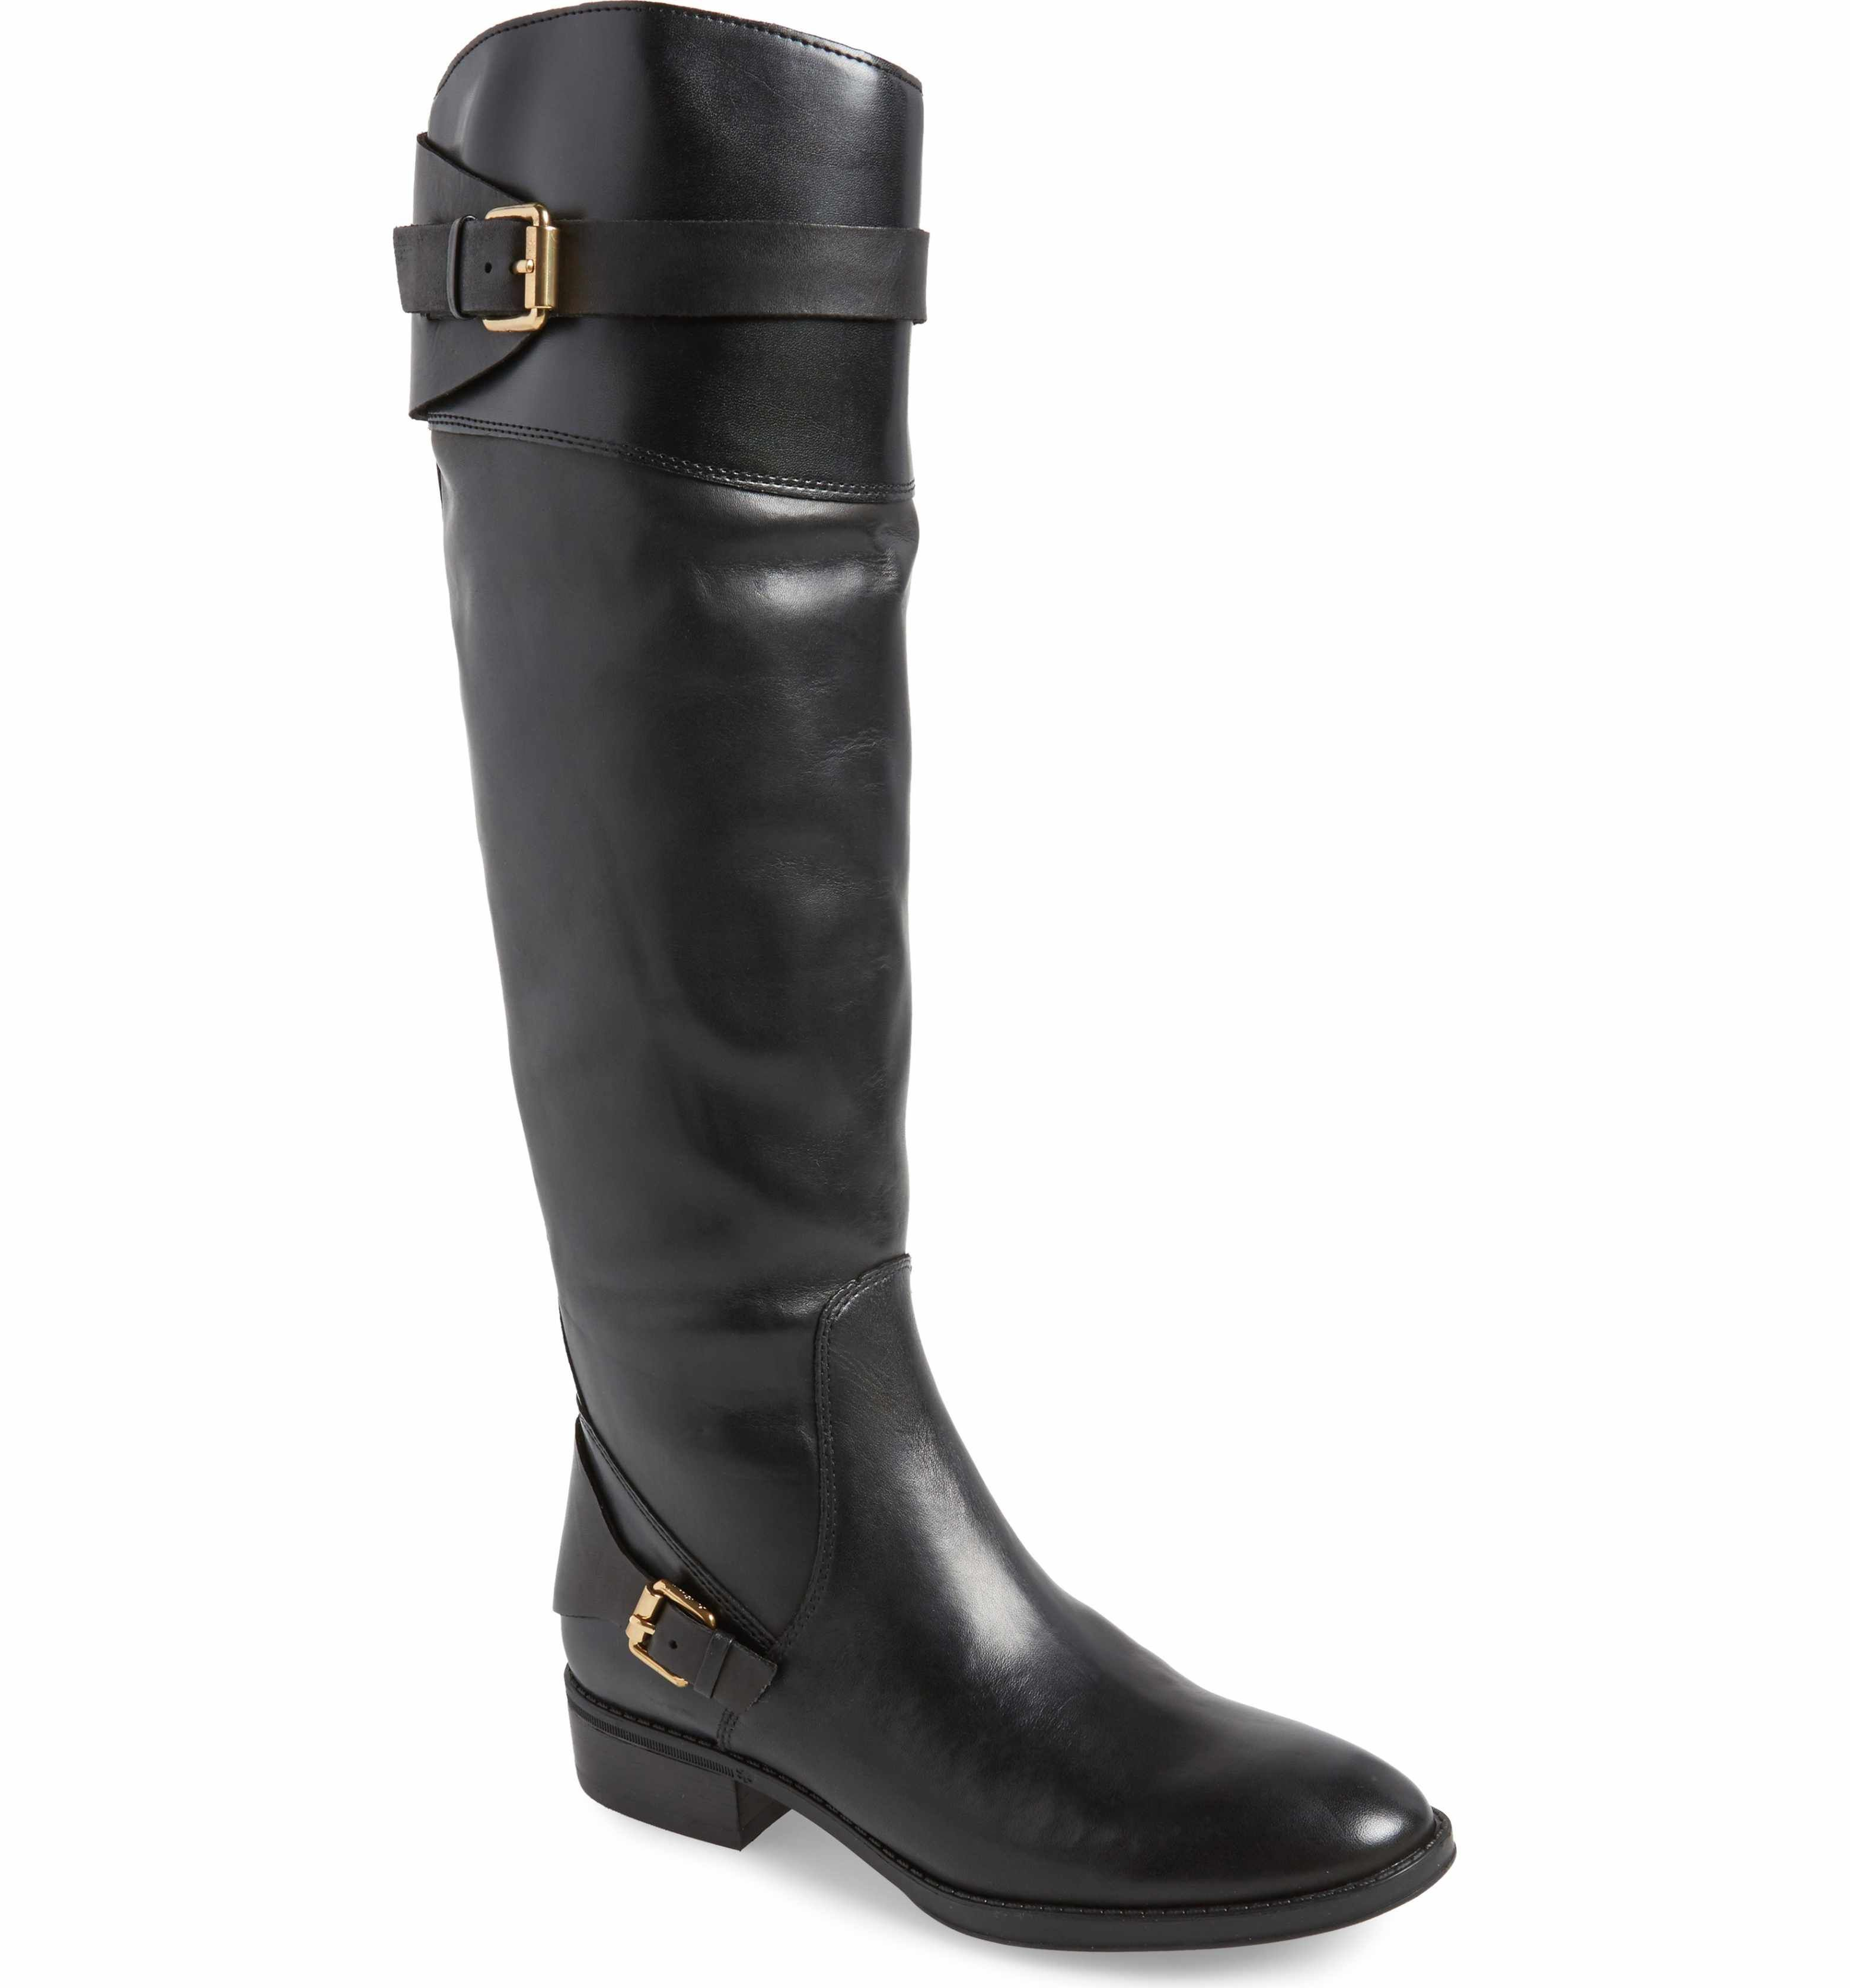 e8c796c8756 Main Image - Sam Edelman Portman Boot (Women) Knee High Boots